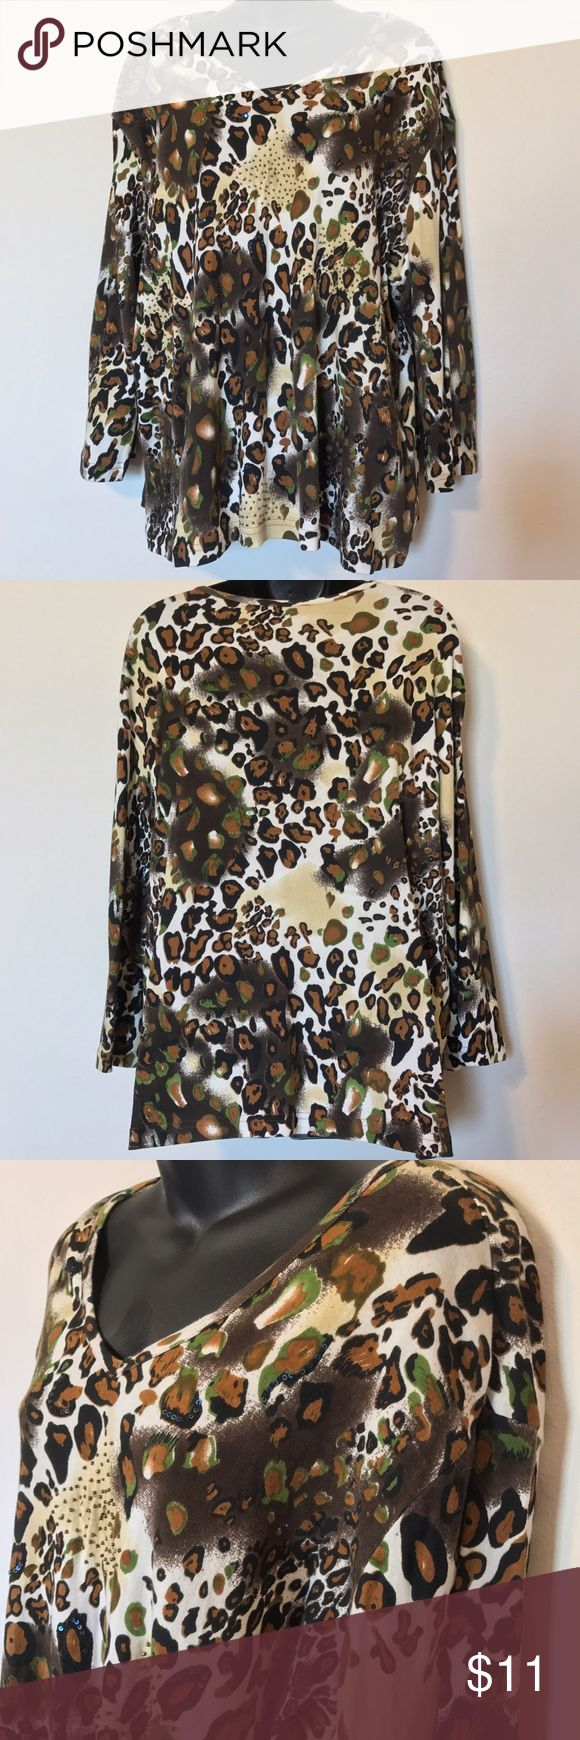 """WESTBOUND ANIMAL LEOPARD PRINT TOP 3/4 SLEEVE WESTBOUND PLUS SIZE 2X WOMEN'S ANIMAL LEOPARD PRINT TOP 3/4 SLEEVE COTTON SHIRT MEASUREMENTS LYING FLAT ARMPIT TO ARMPIT 27"""" LENGTH 27"""" Westbound Tops Blouses"""